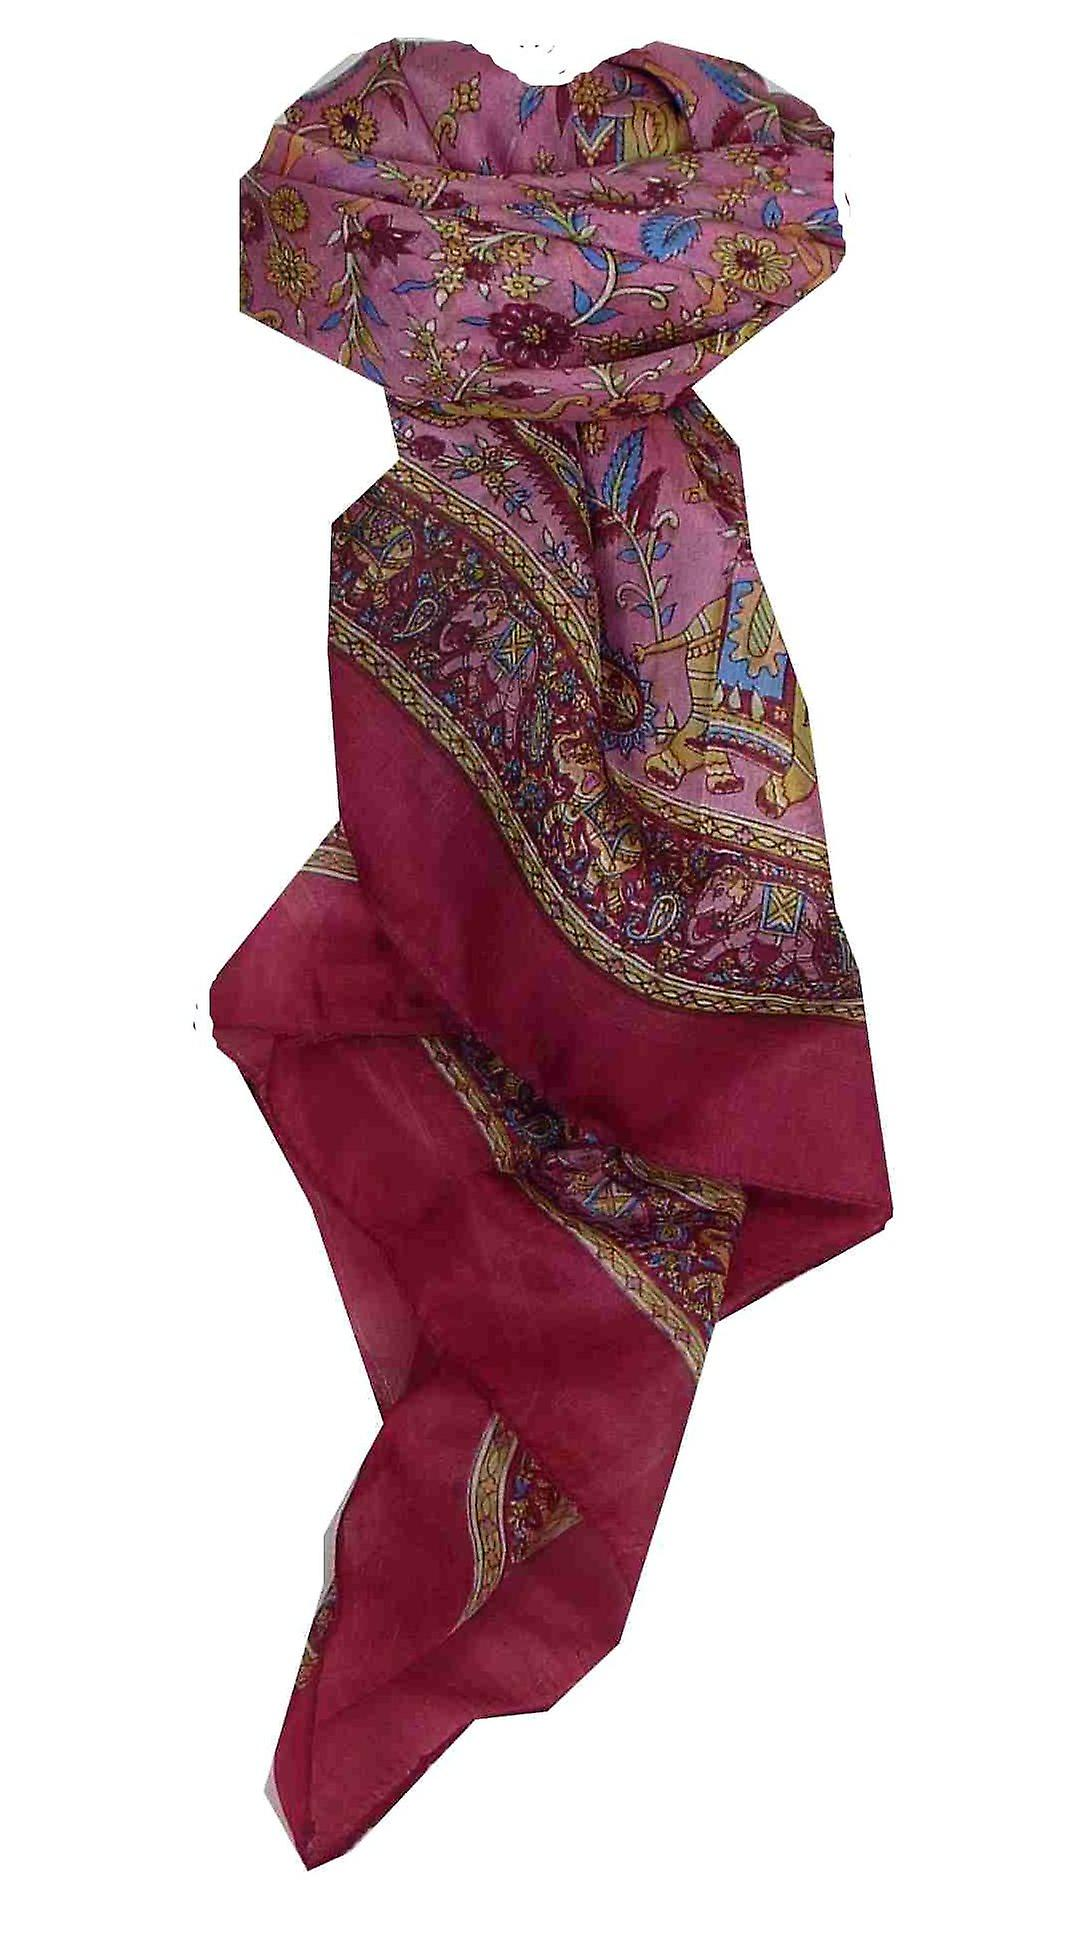 Mulberry Silk Traditional Square Scarf Abhan Carmine by Pashmina & Silk